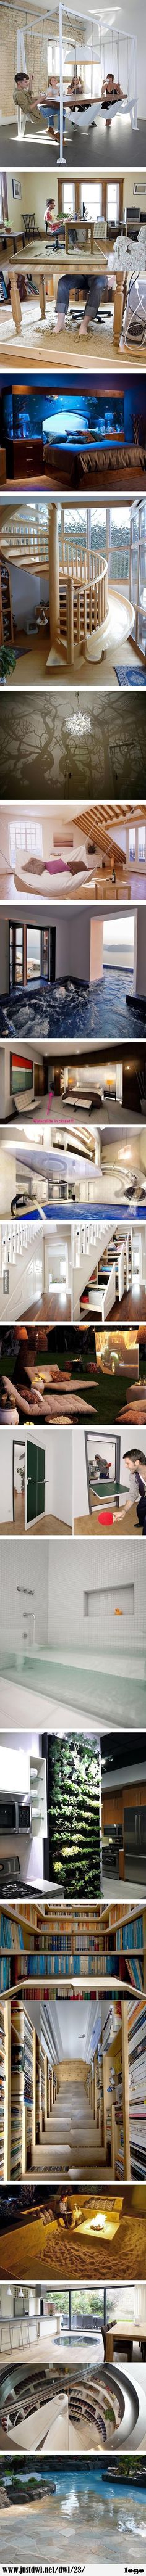 18 awesome #home #ideas